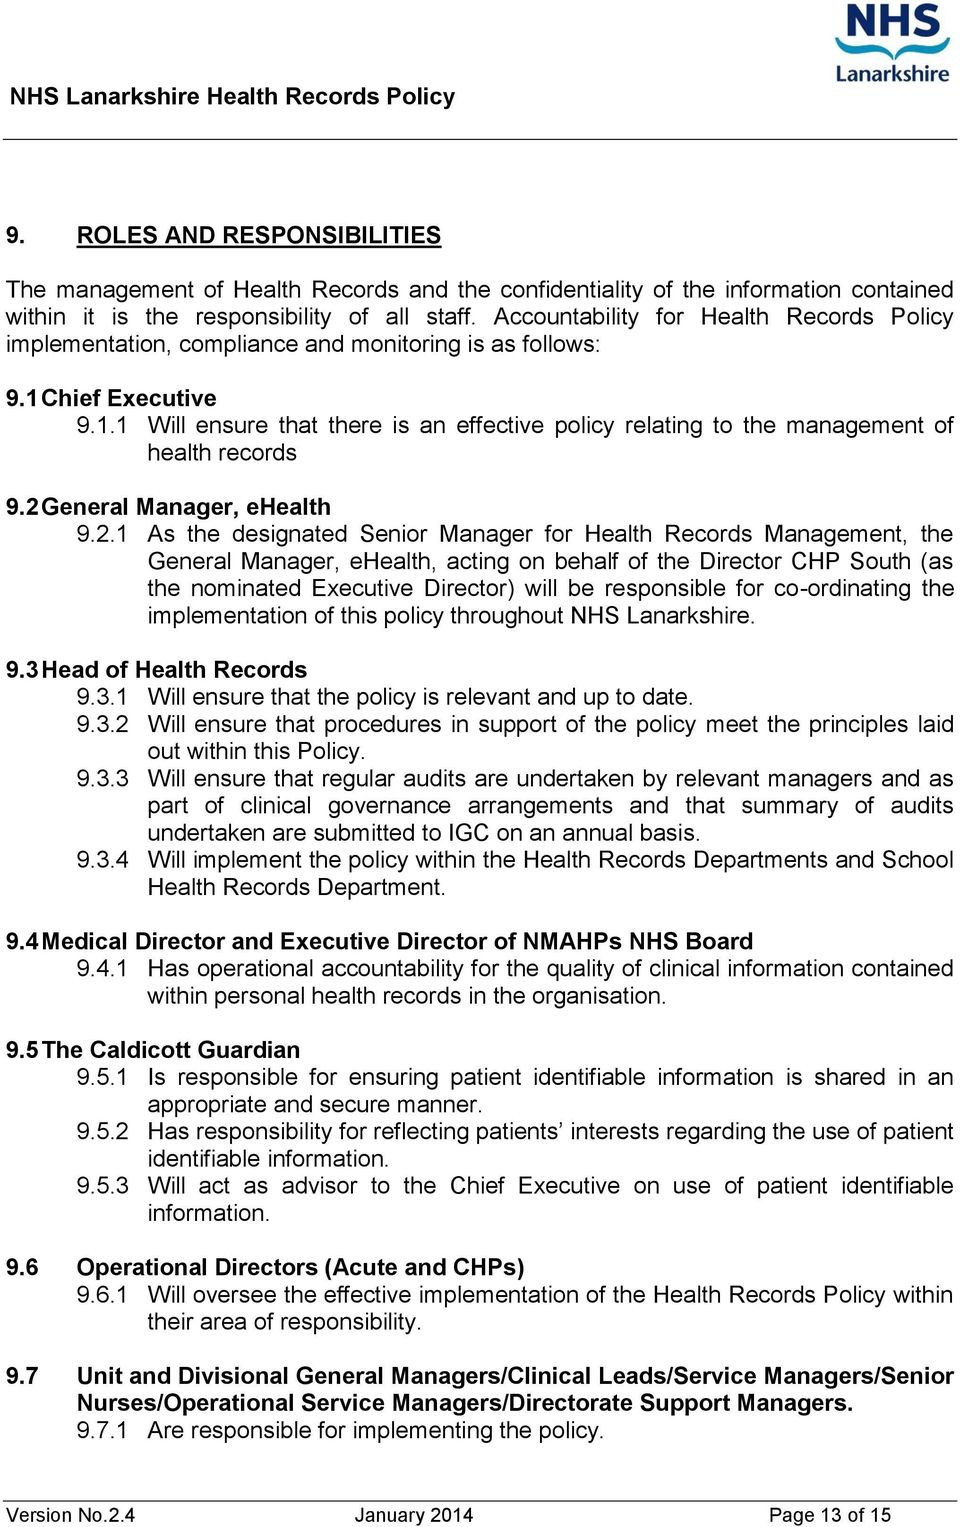 2 General Manager, ehealth 9.2.1 As the designated Senior Manager for Health Records Management, the General Manager, ehealth, acting on behalf of the Director CHP South (as the nominated Executive